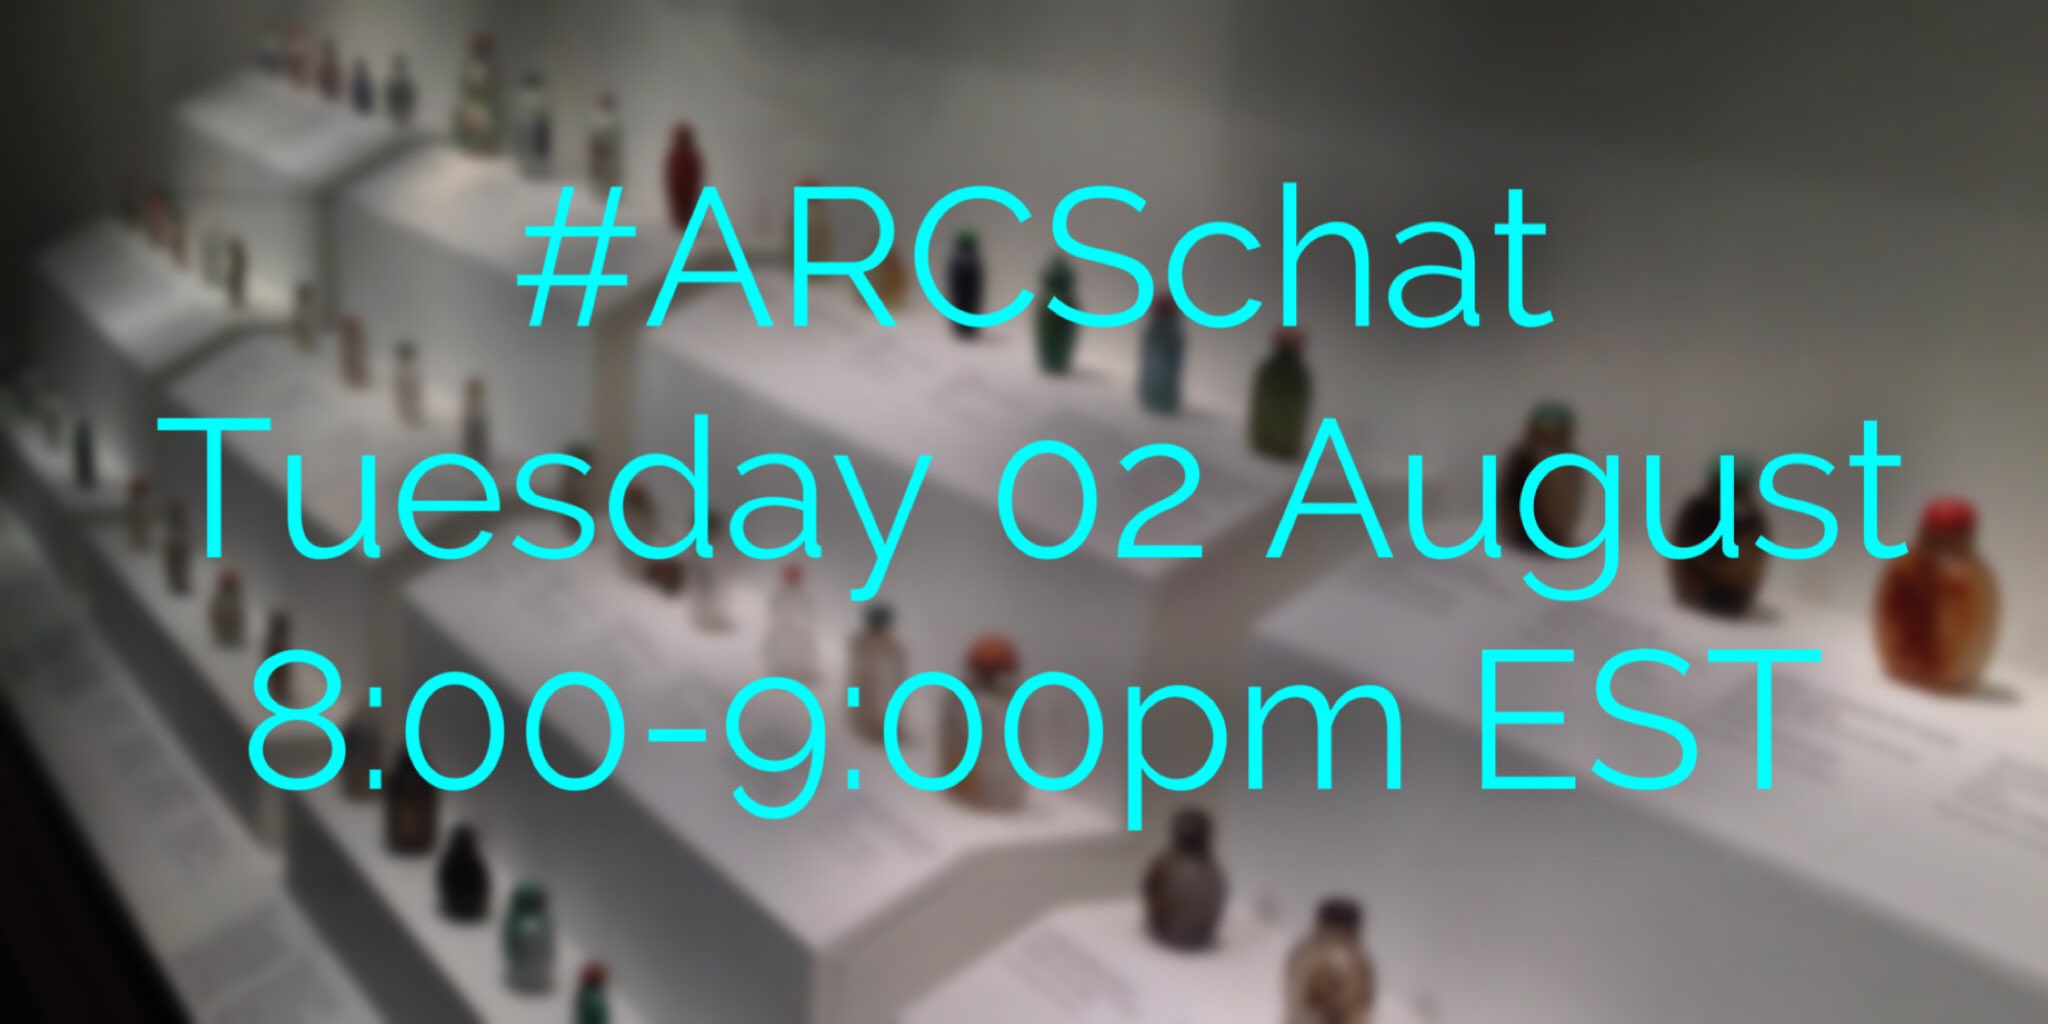 Thumbnail for #ARCSchat 02 August 2016 - Registrar/Educator collaborations